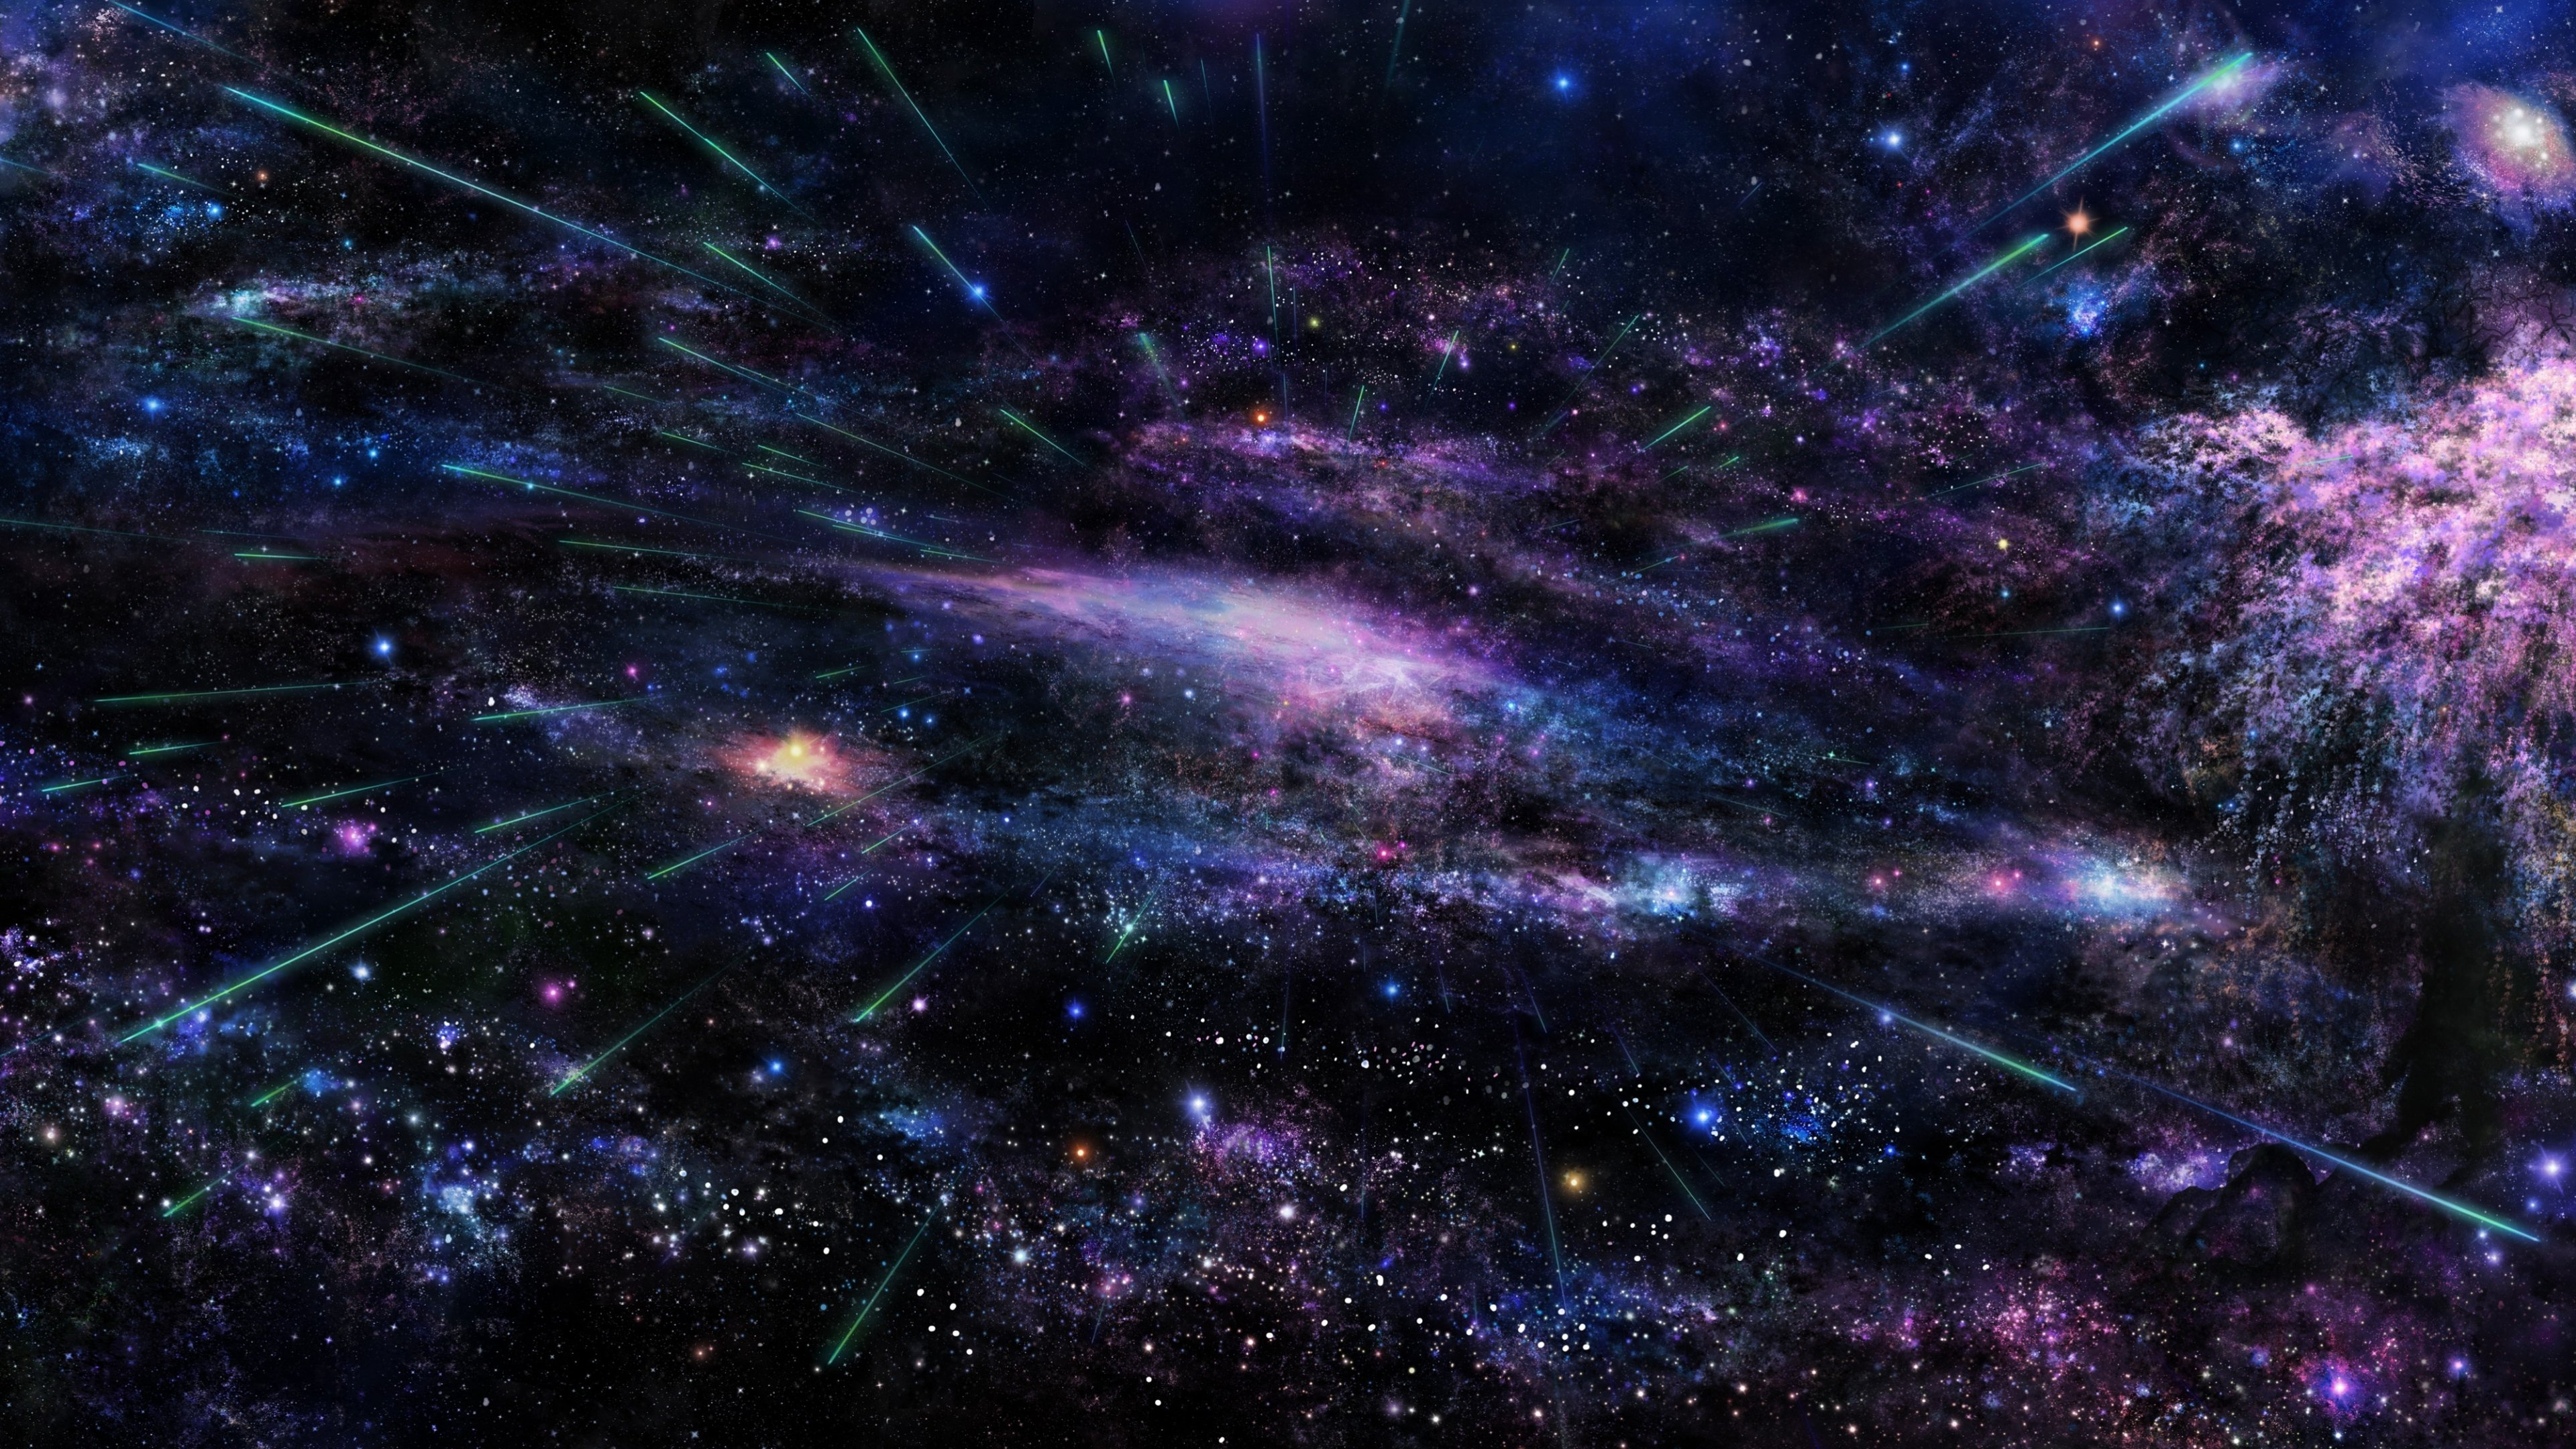 space 4K Ultra HD HD Background   HD Wallpapers Ultra HD Wallpapers 3840x2160